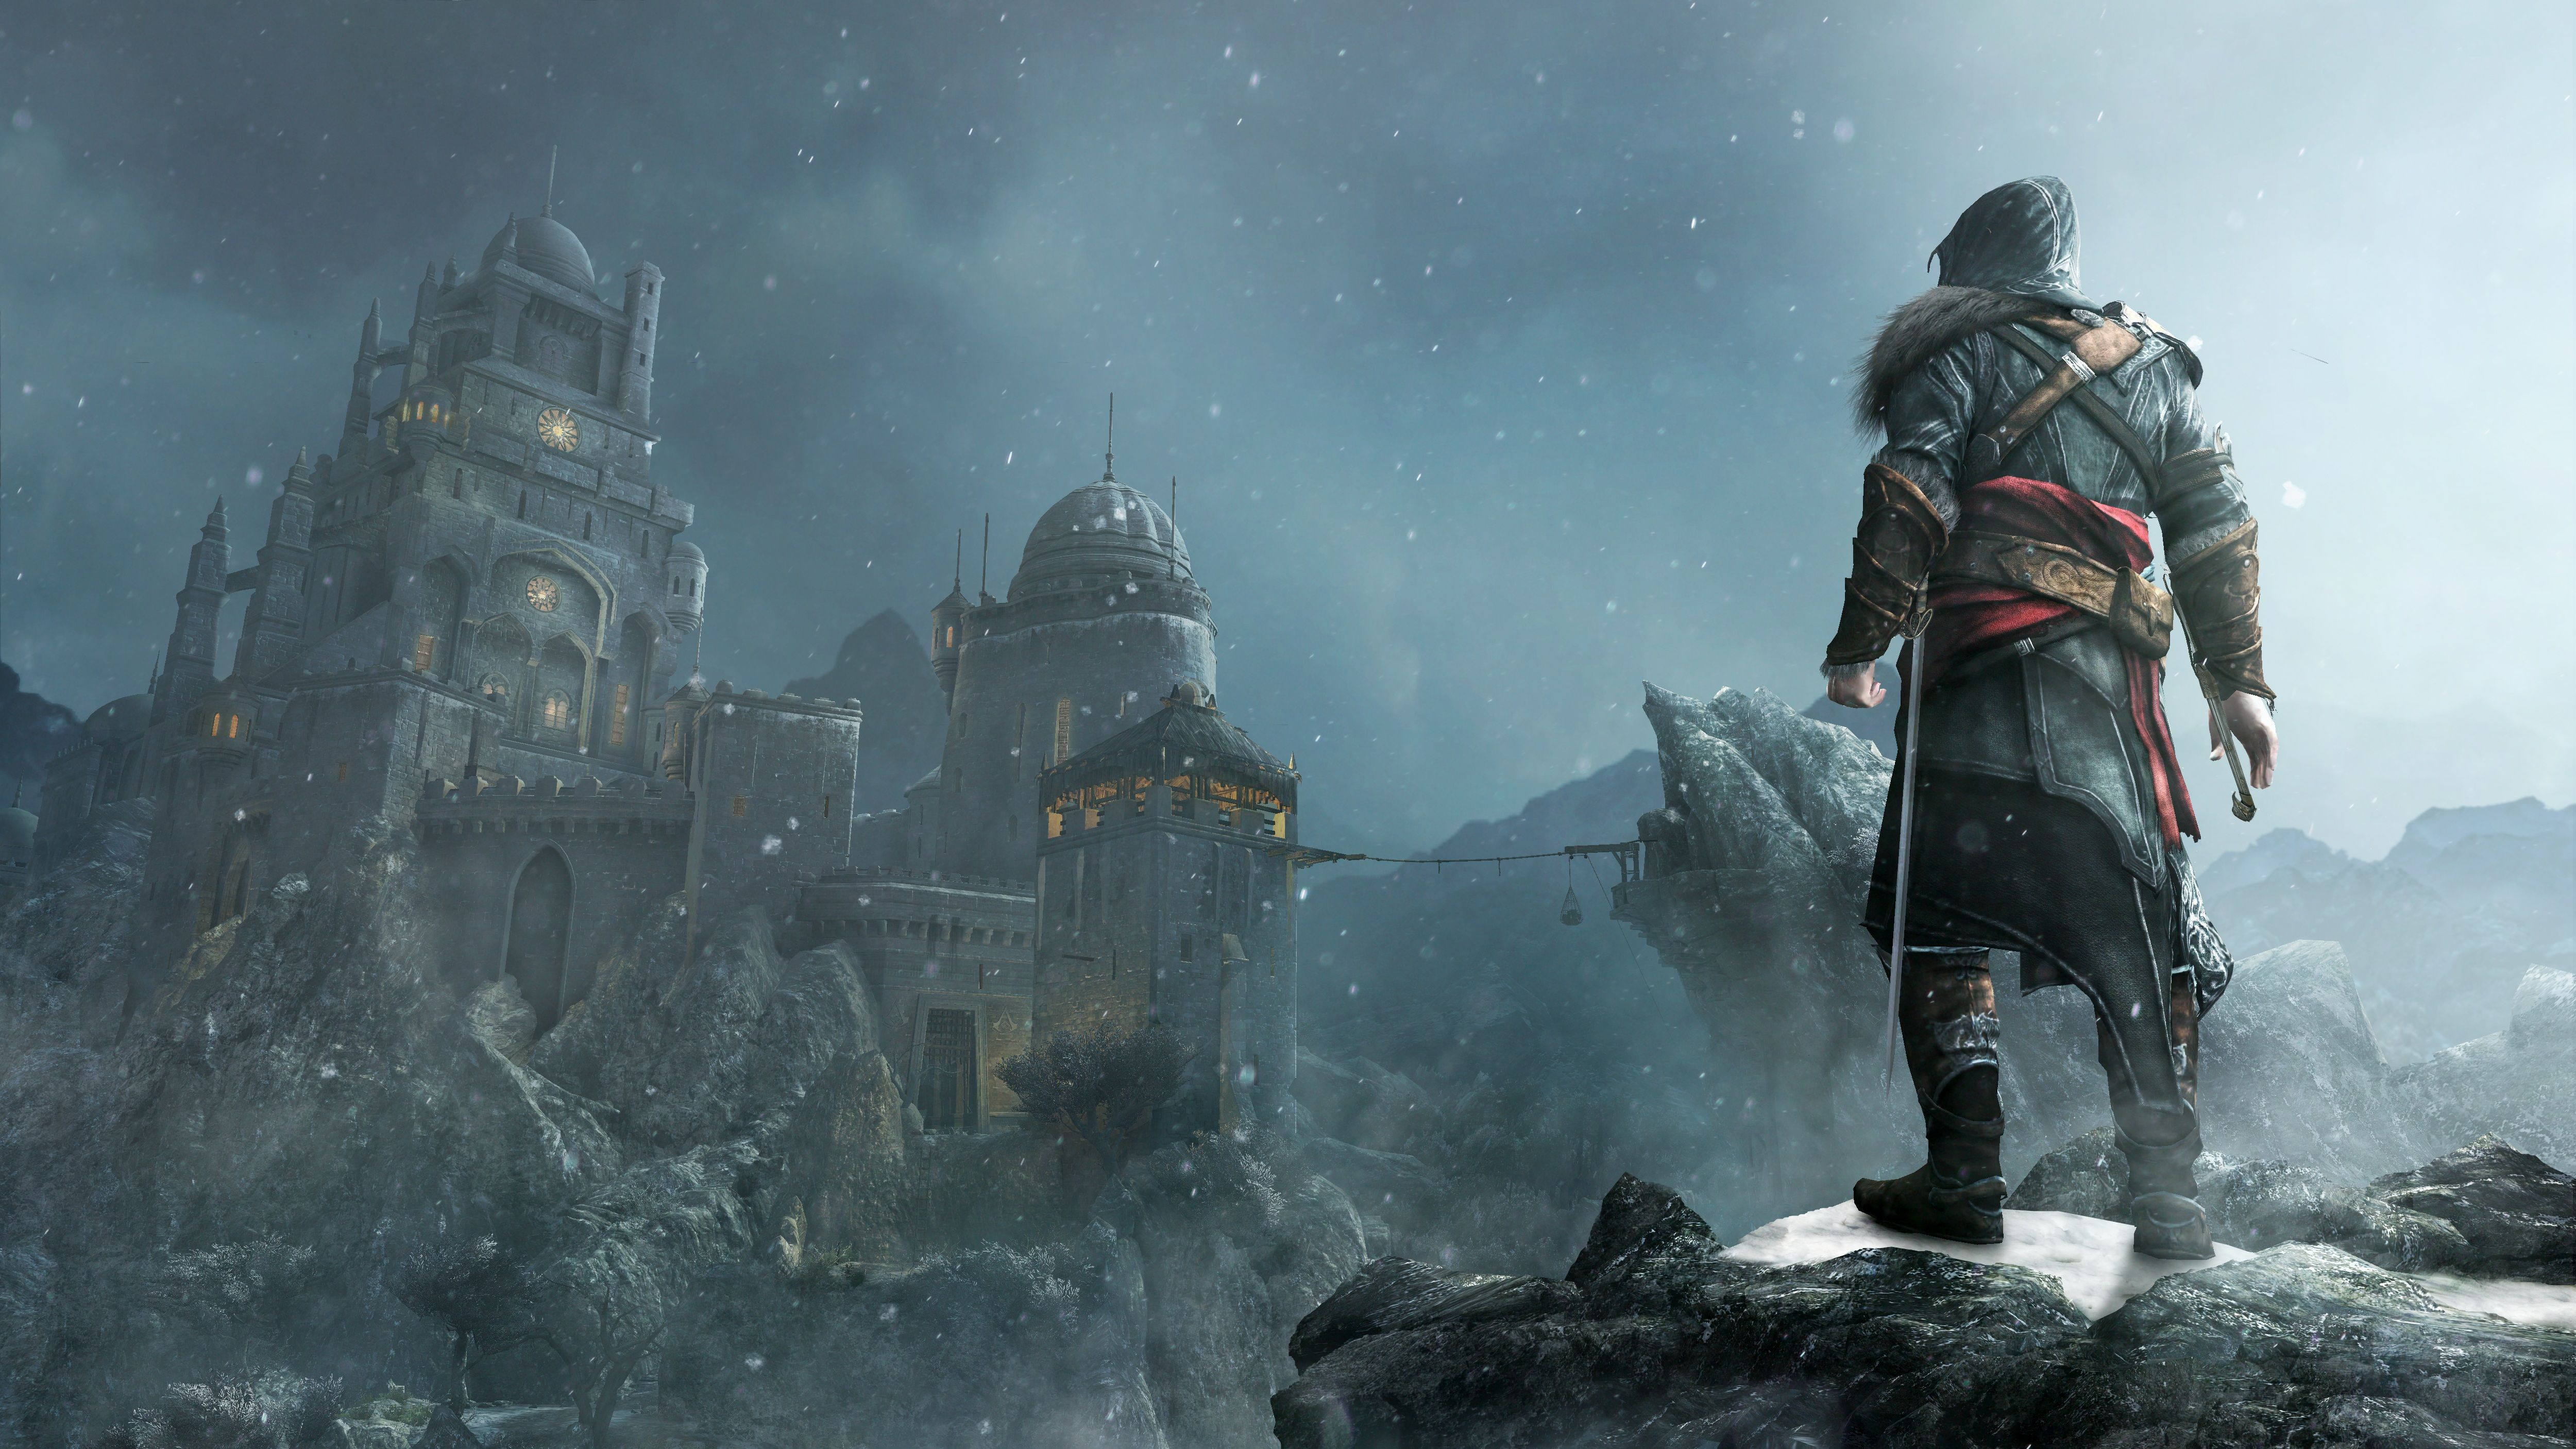 Dota2 wallpaper pc wallpapers gallery tactical gaming - 63 Assassins Creed Revelations Hd Wallpapers Backgrounds Pc Gamesgame